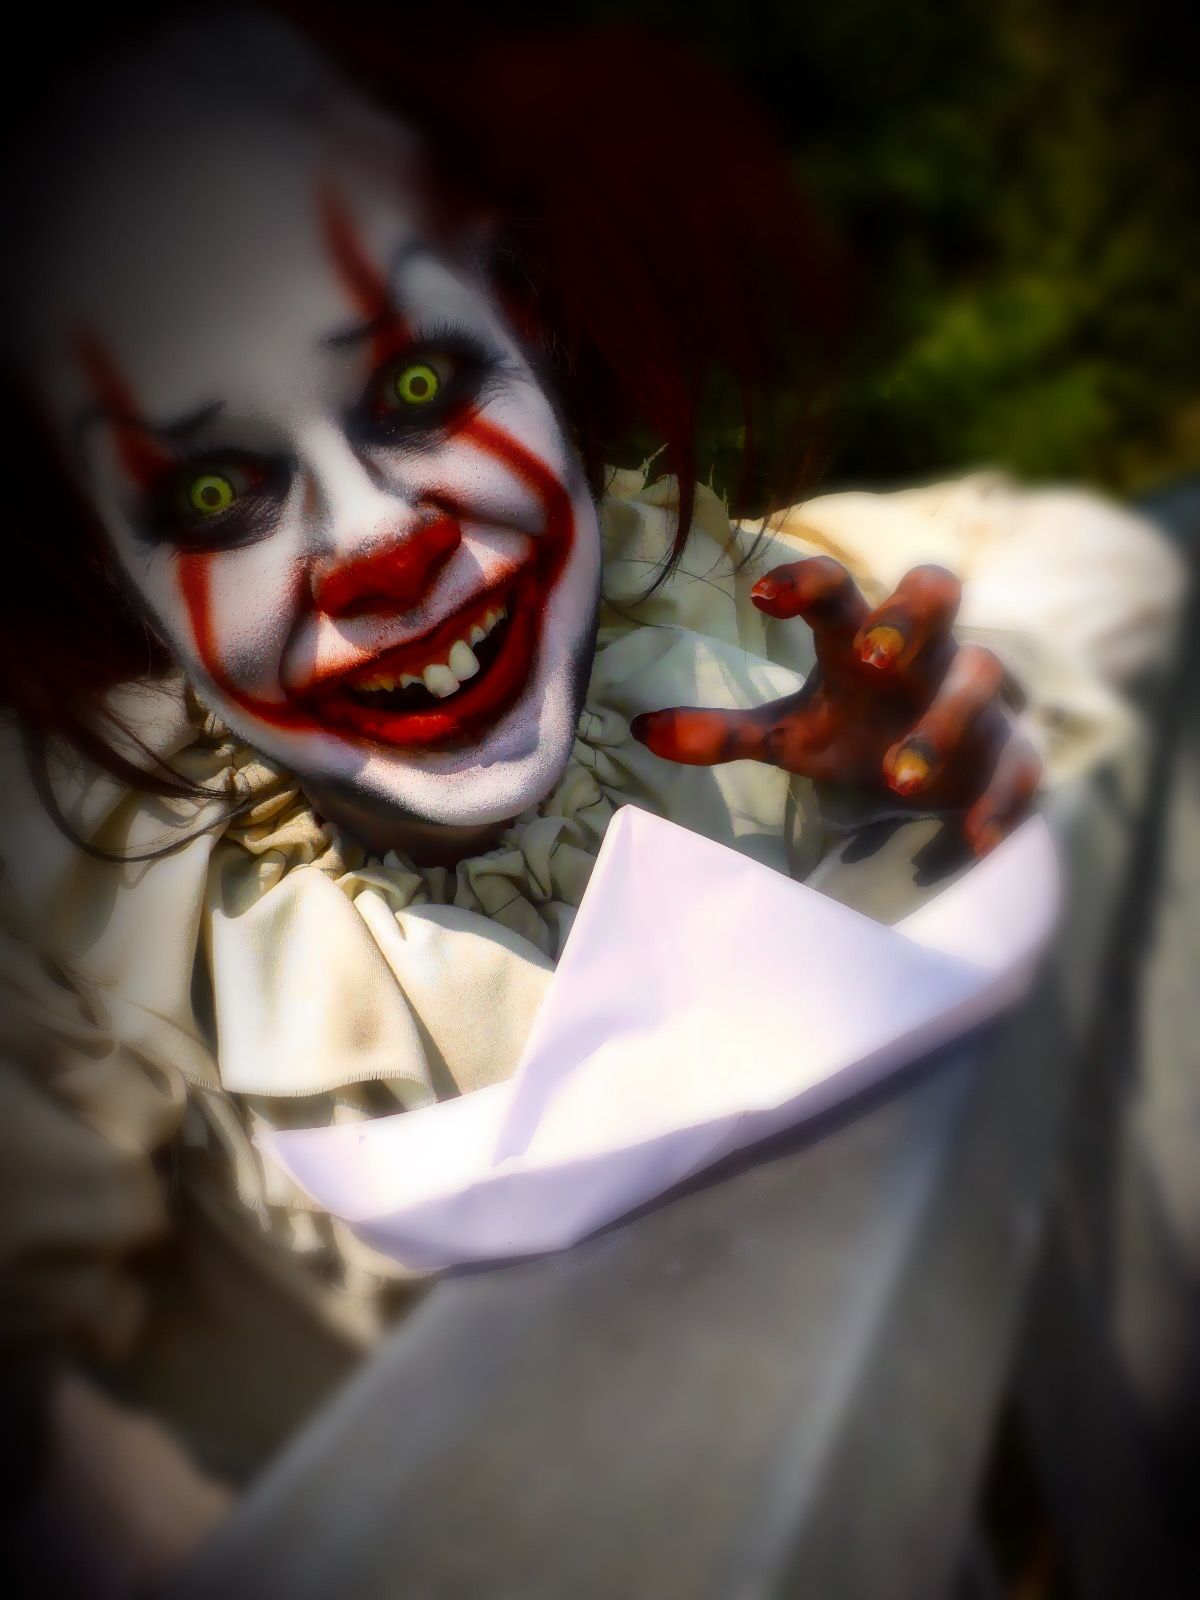 Pennywise makeup. Stephen King's IT 2017. Stephen King